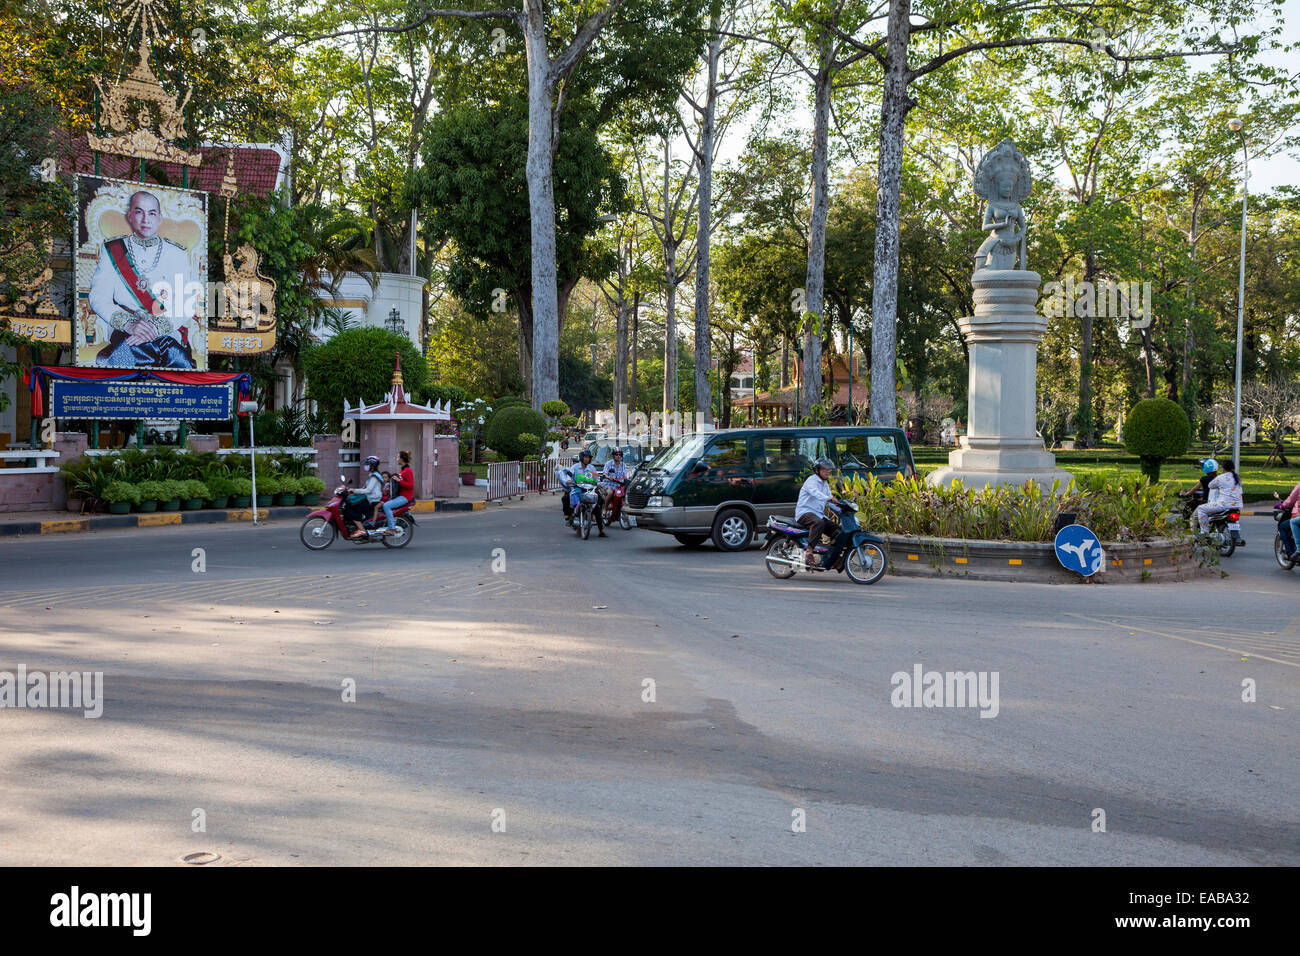 Cambodia, Siem Reap.  Street Traffic, with Poster in Honor of Former King Norodom Sihanouk. Stock Photo